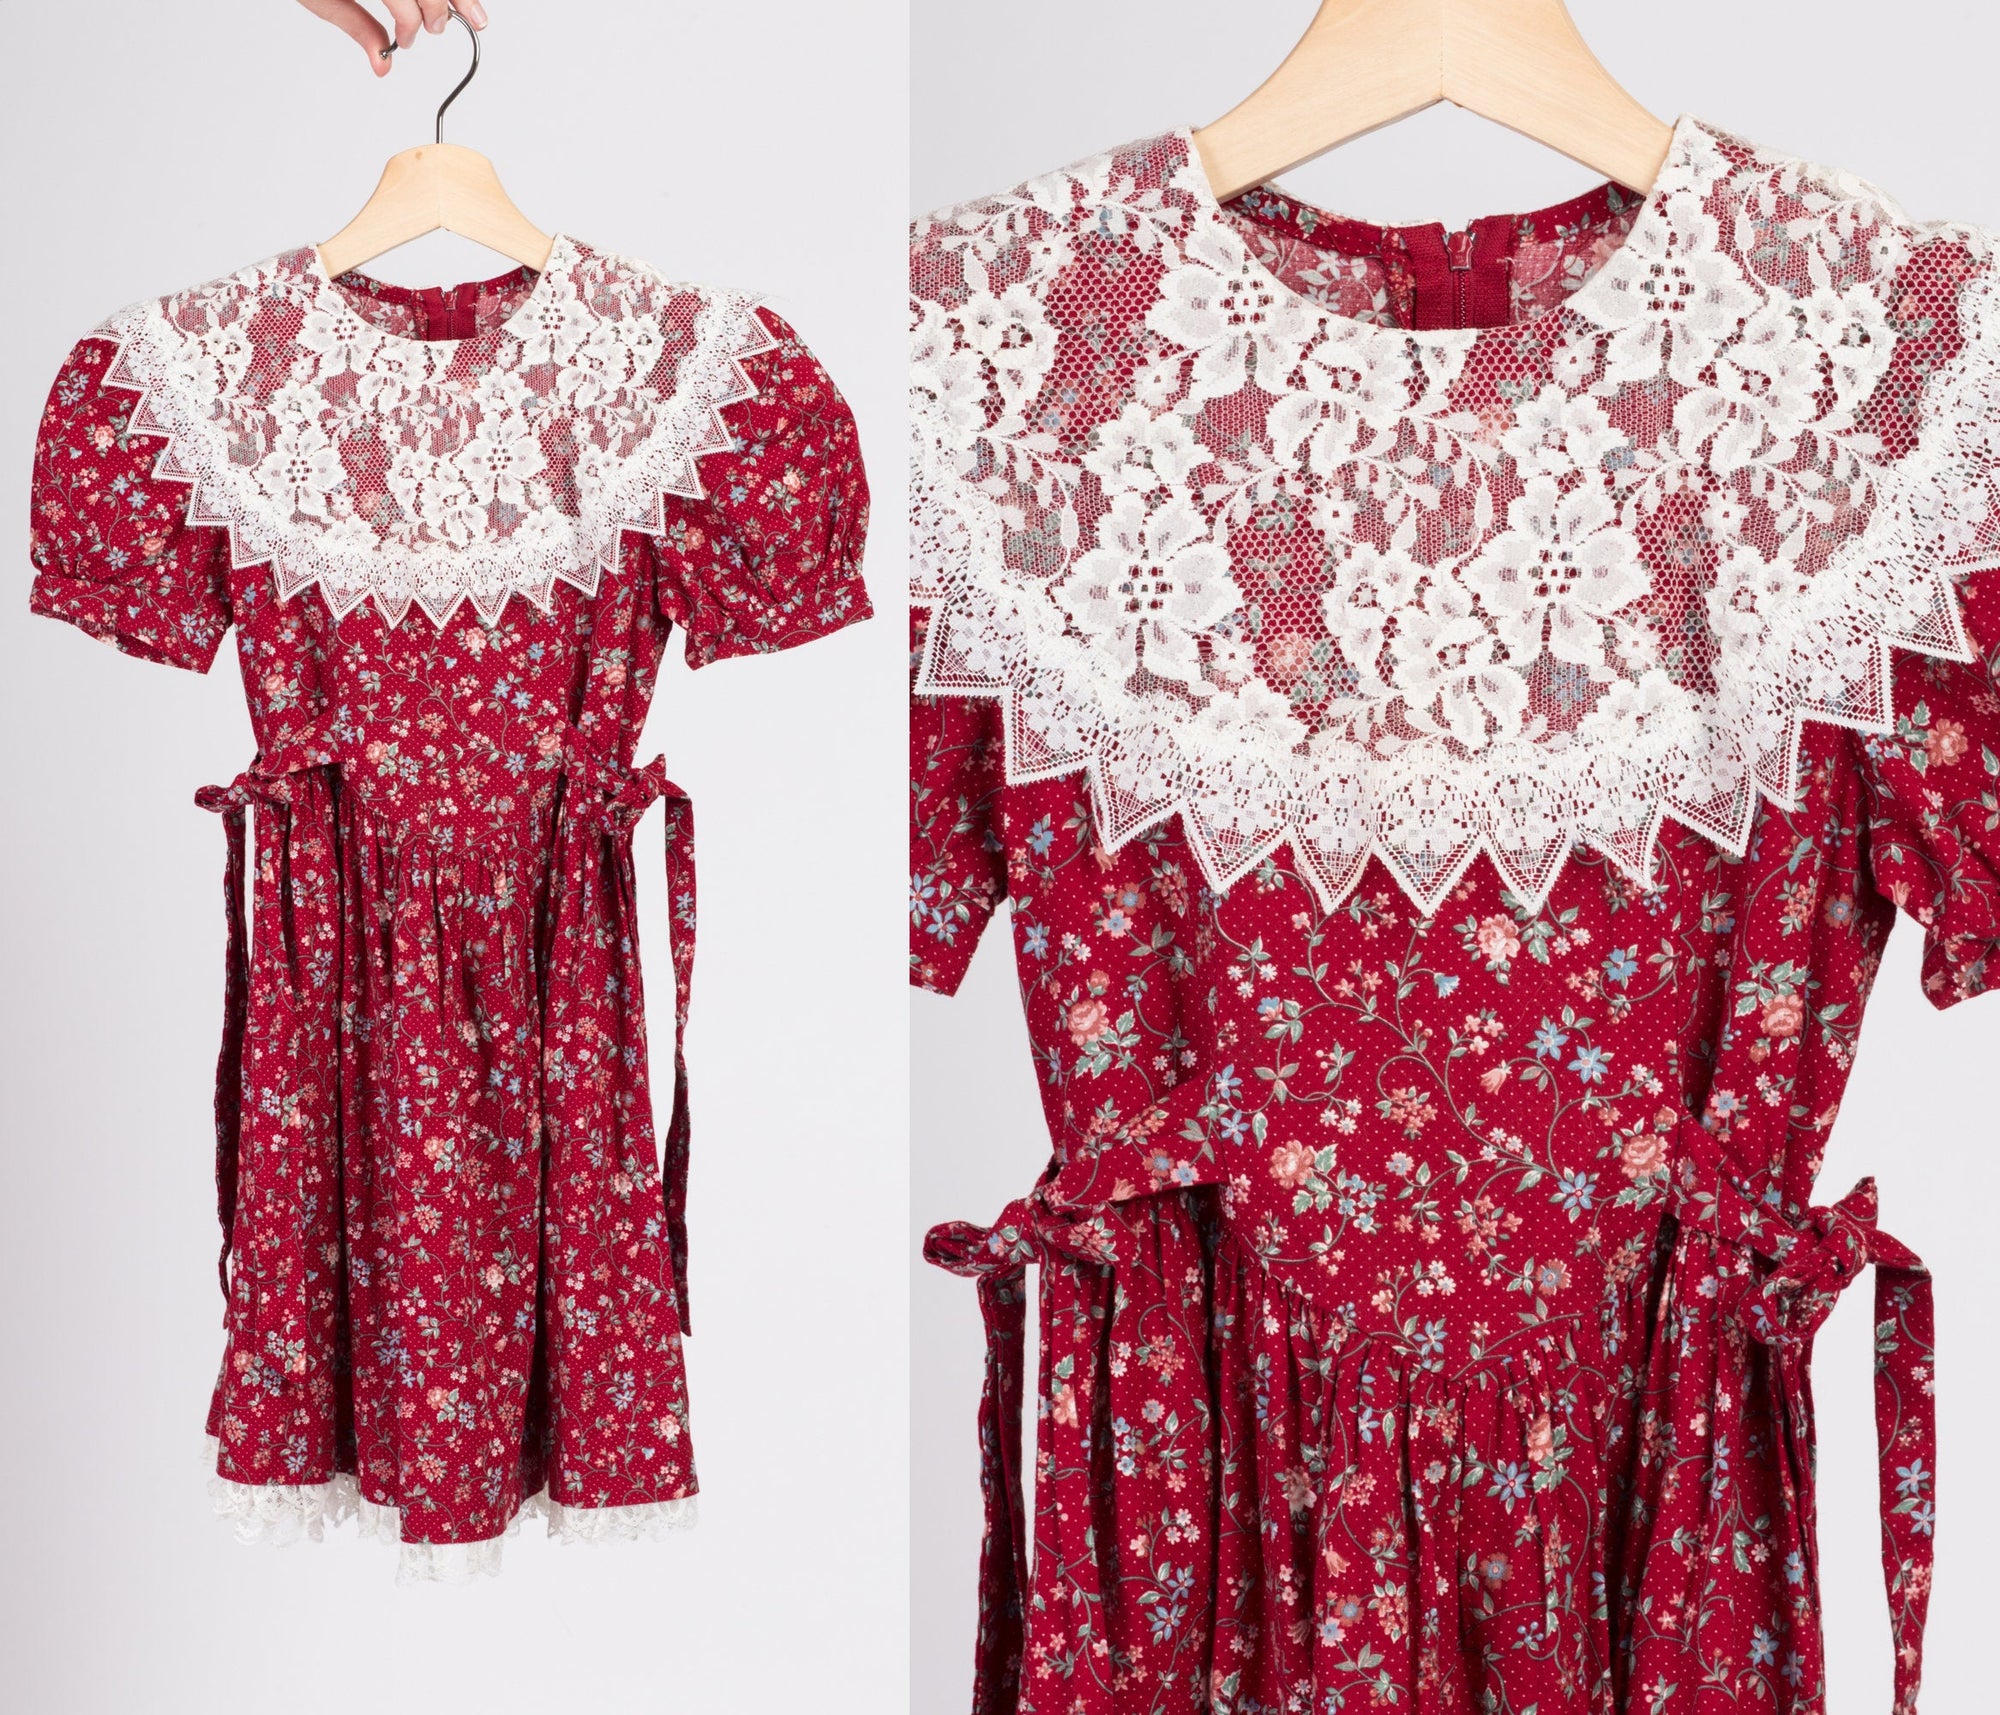 Vintage Gunne Sax Girls Red Floral Dress - Size 6x